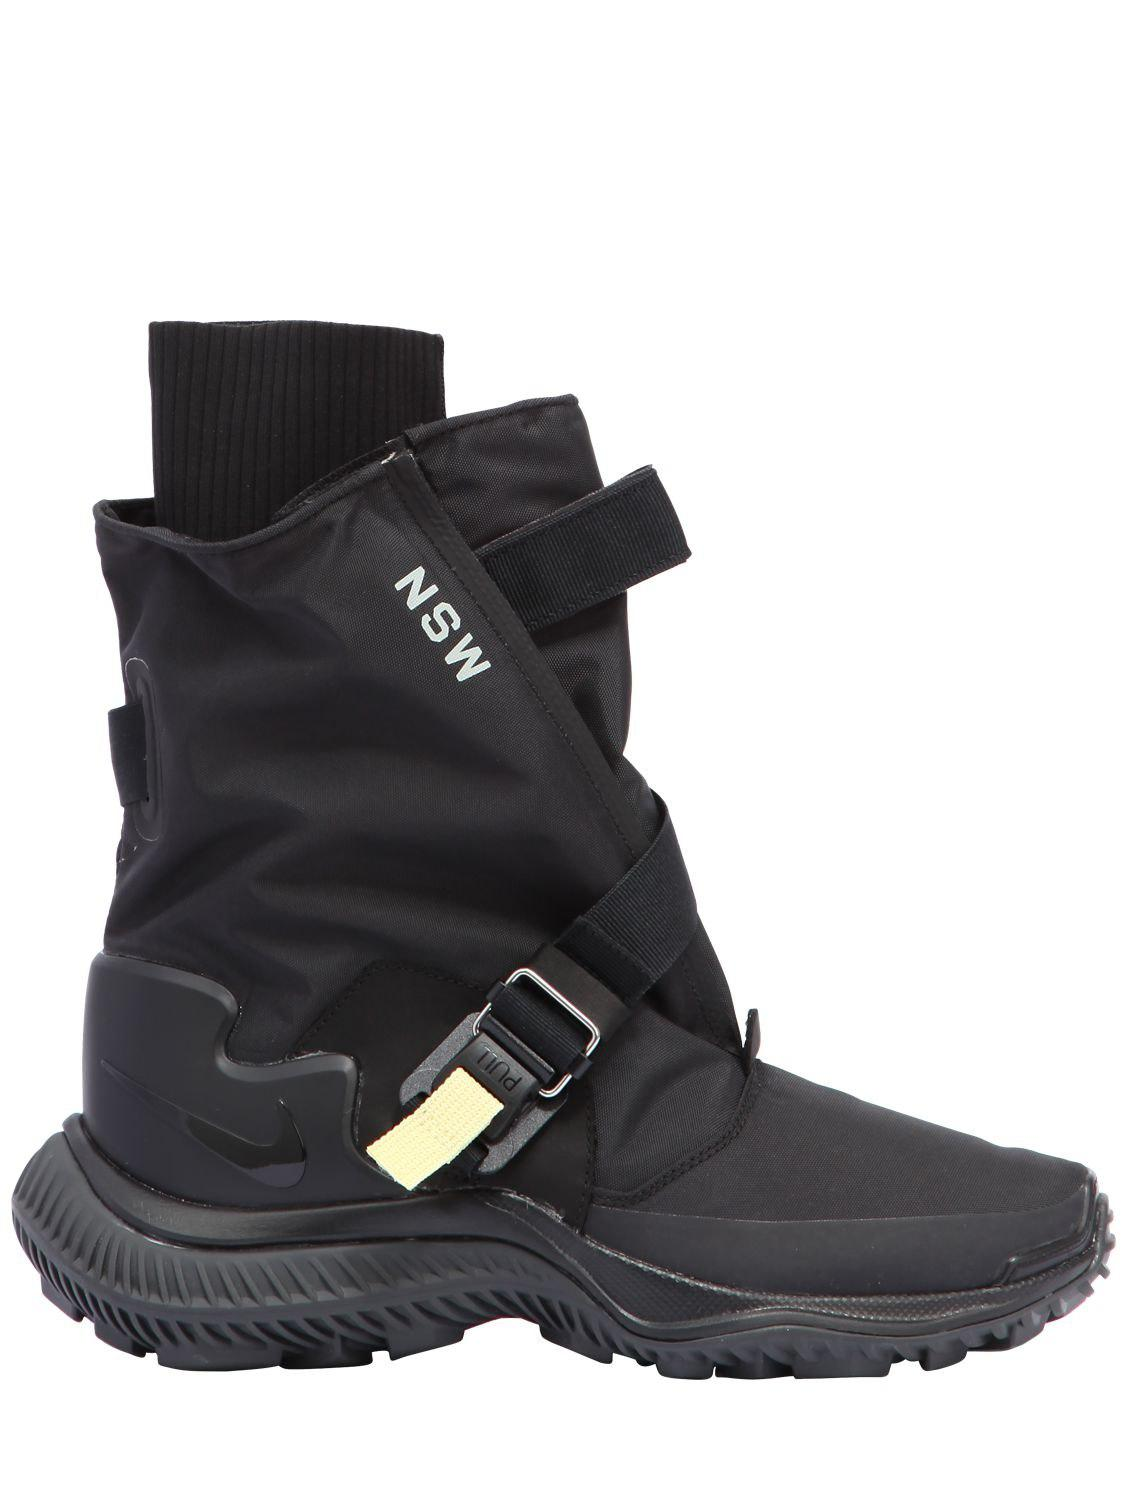 Lyst - Nike Acg.009.bt Waterproof Sneaker Boots in Black 3a8169626